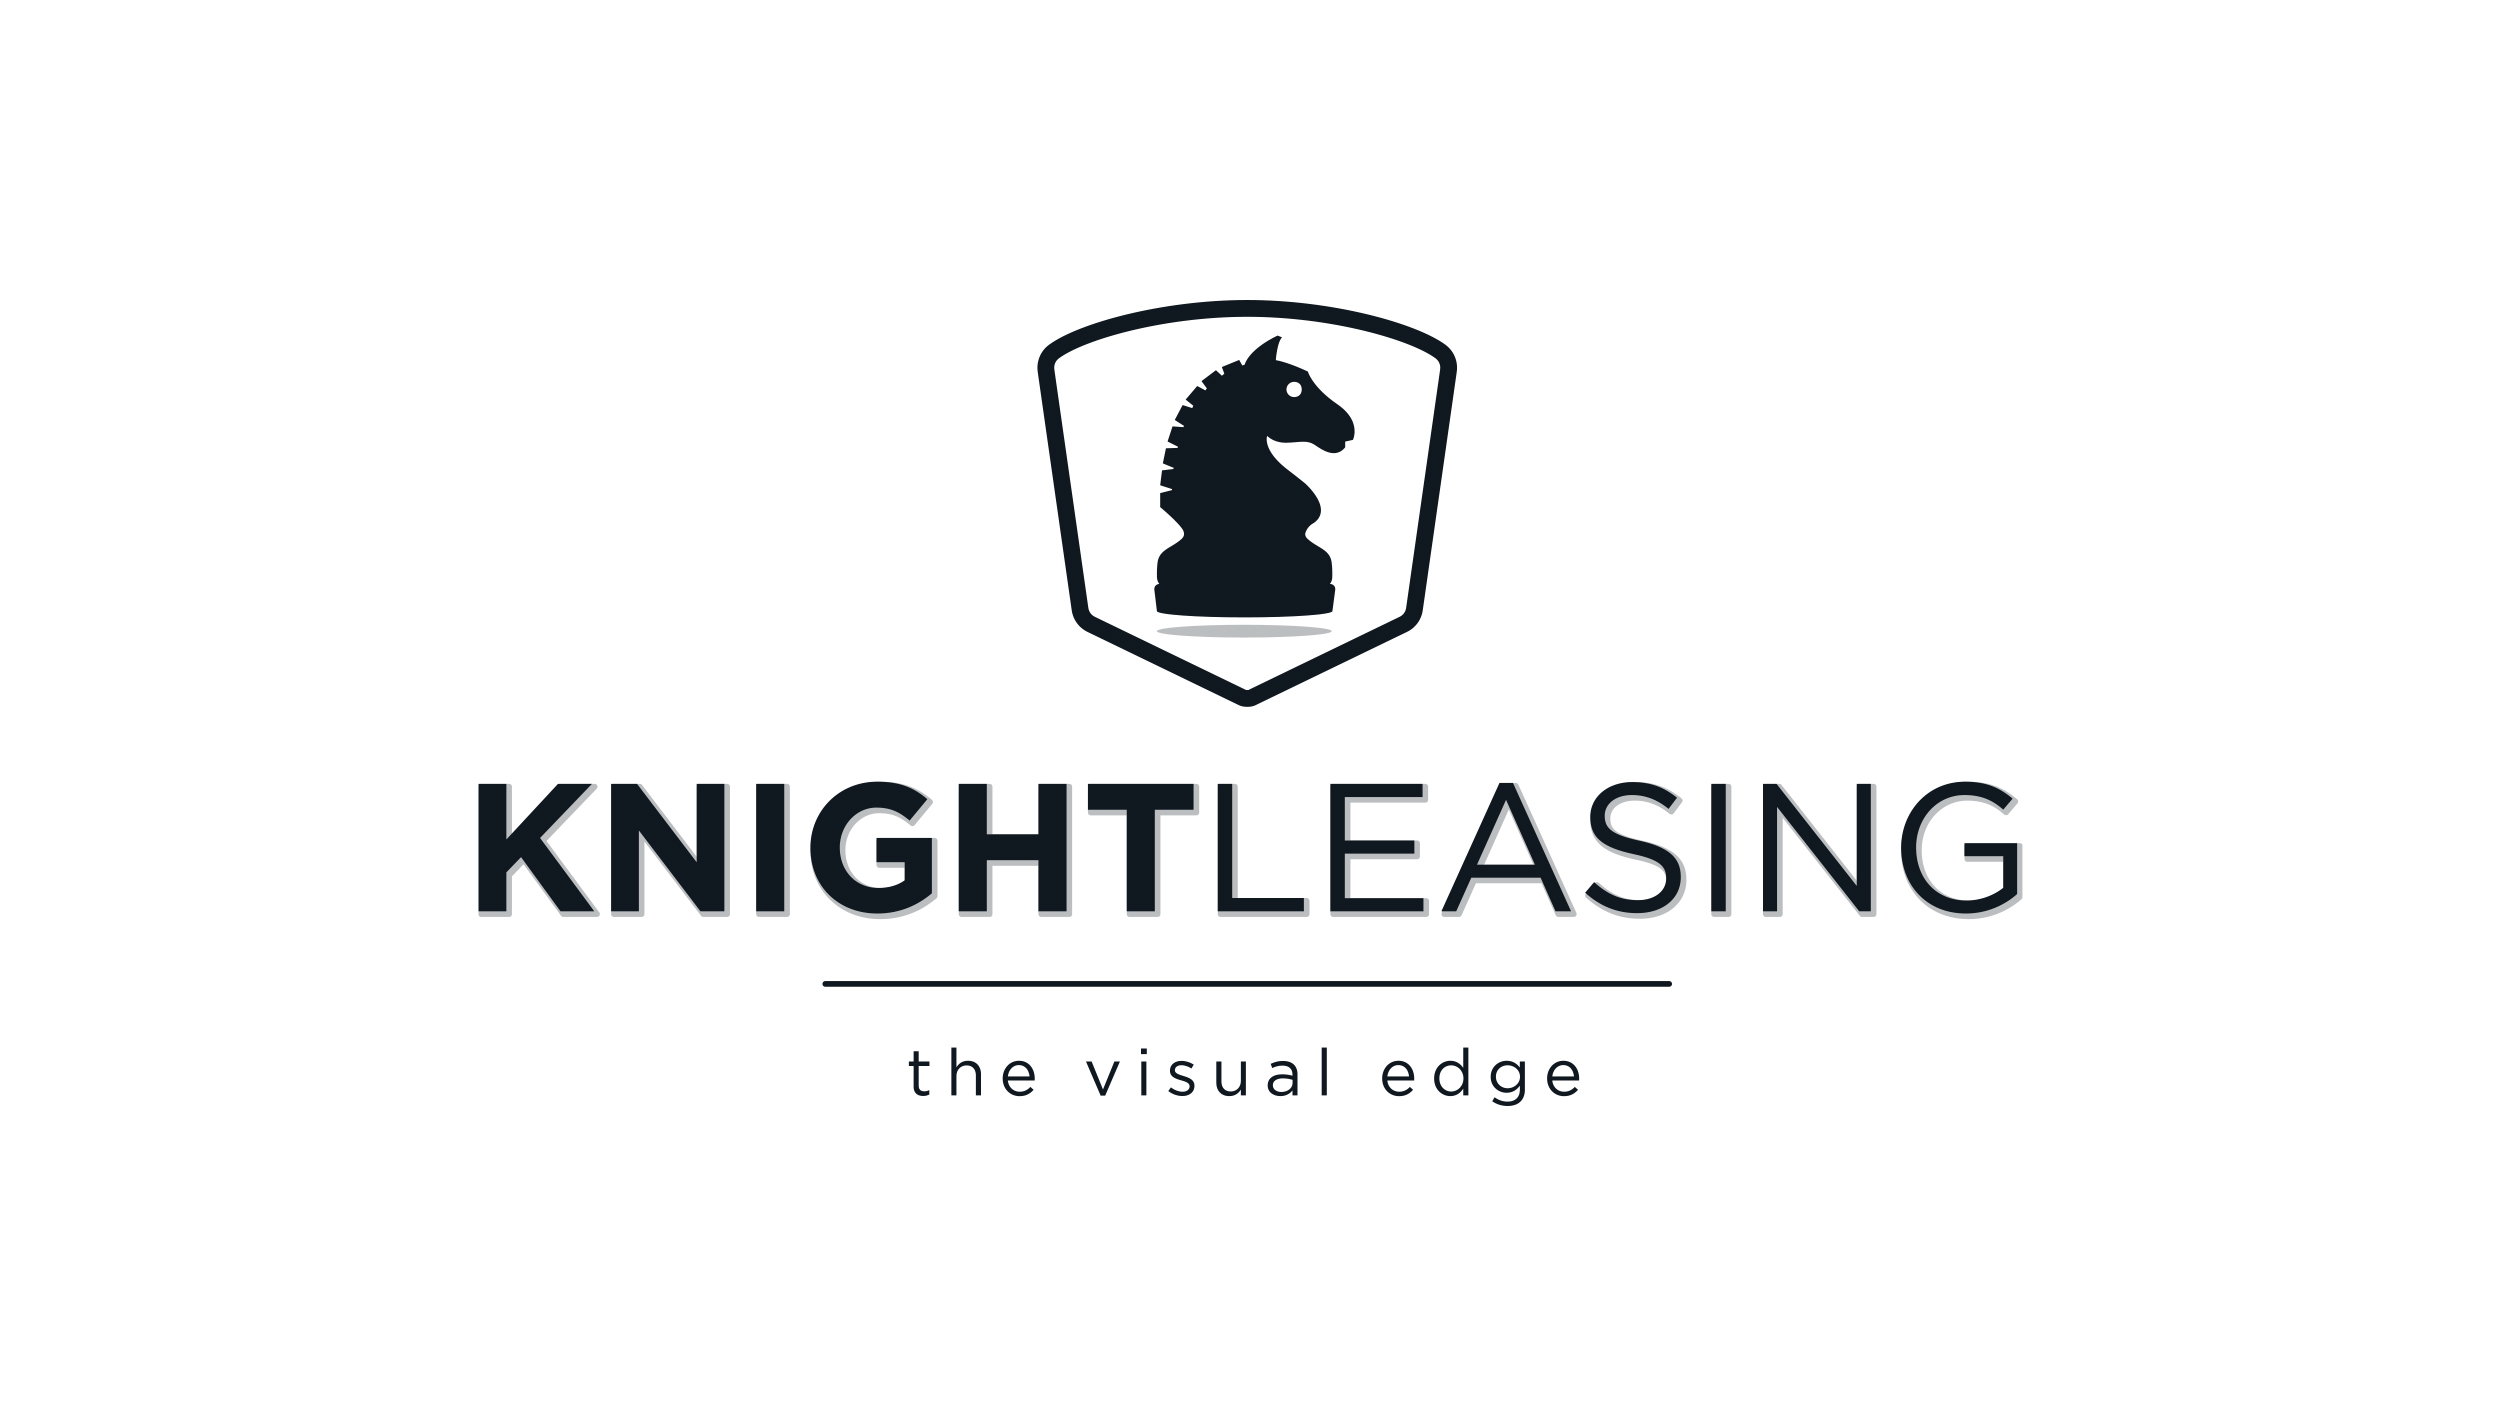 KNIGHT LEASING  Logo   Copyright © Afro Boy Productions. All rights reserved.